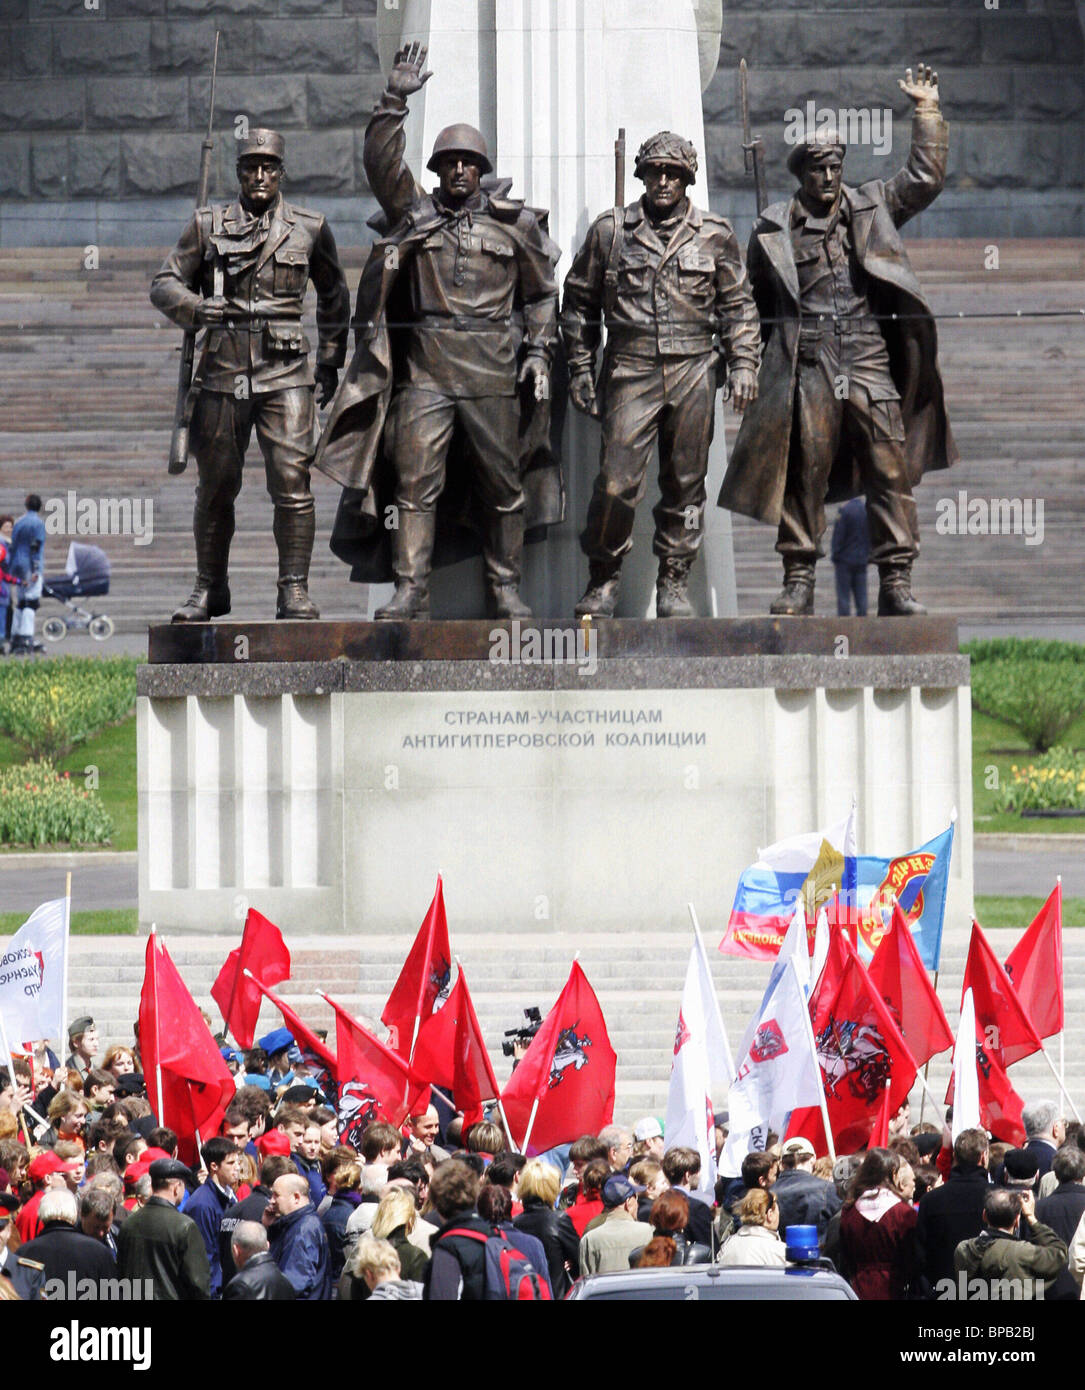 Monument to anti-Hitler coalition allies unveiled in Moscow - Stock Image